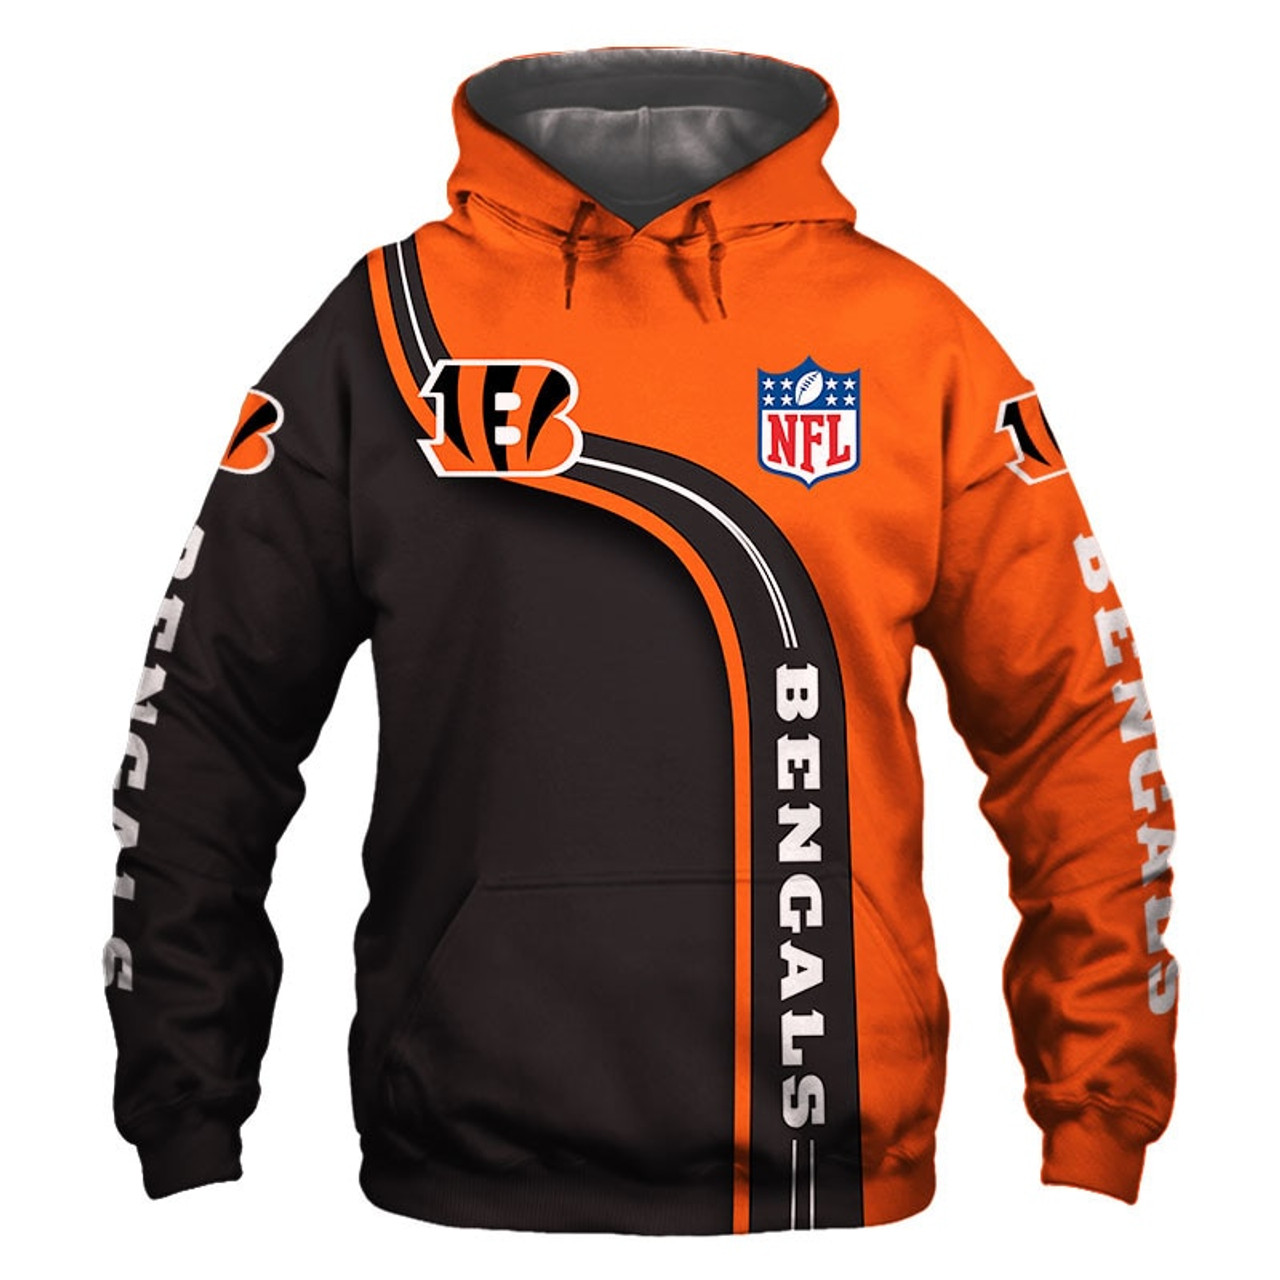 **(OFFICIAL-N.F.L.CINCINNATI-BENGALS-FASHION-PULLOVER-TEAM-HOODIES/CUSTOM-3D-GRAPHIC-PRINTED-DETAILED-DOUBLE-SIDED-DESIGN/CLASSIC-OFFICIAL-BENGALS-TEAM-LOGOS & OFFICIAL-BENGALS-TEAM-COLORS/WARM-PREMIUM-OFFICIAL-NFL.BENGALS-TEAM-PULLOVER-HOODIES)**